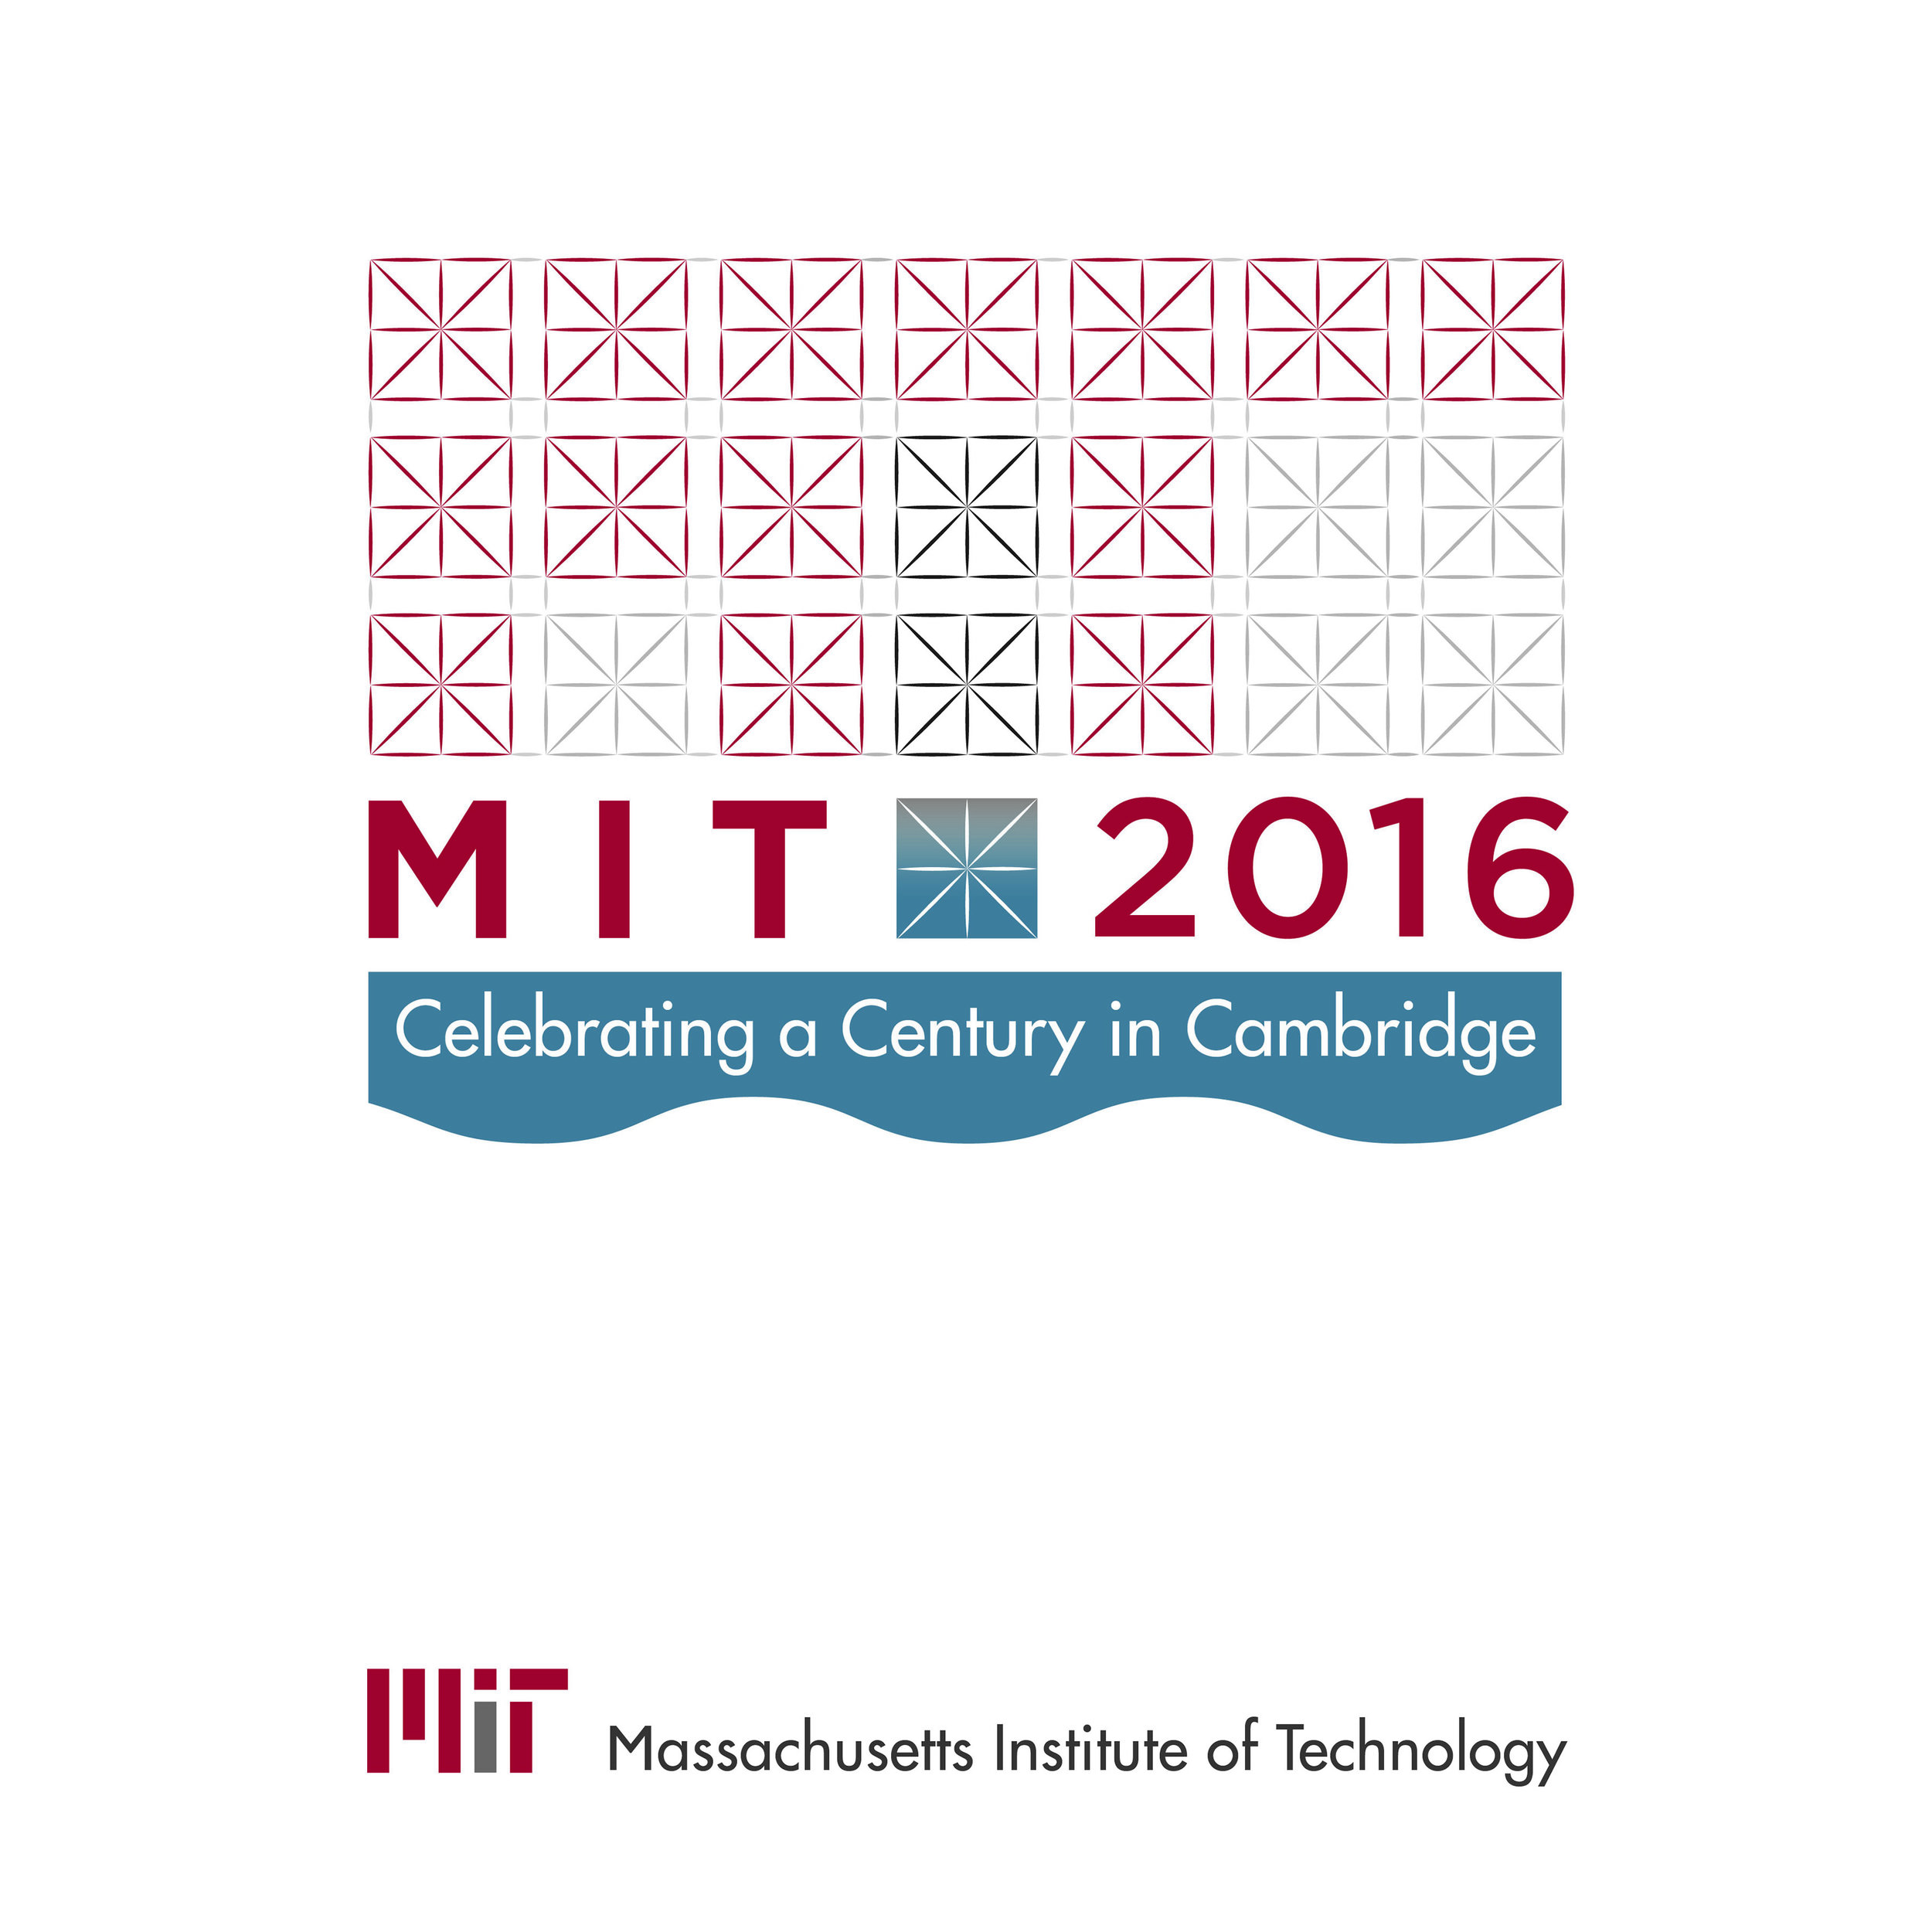 Copy of MIT 2016 logo